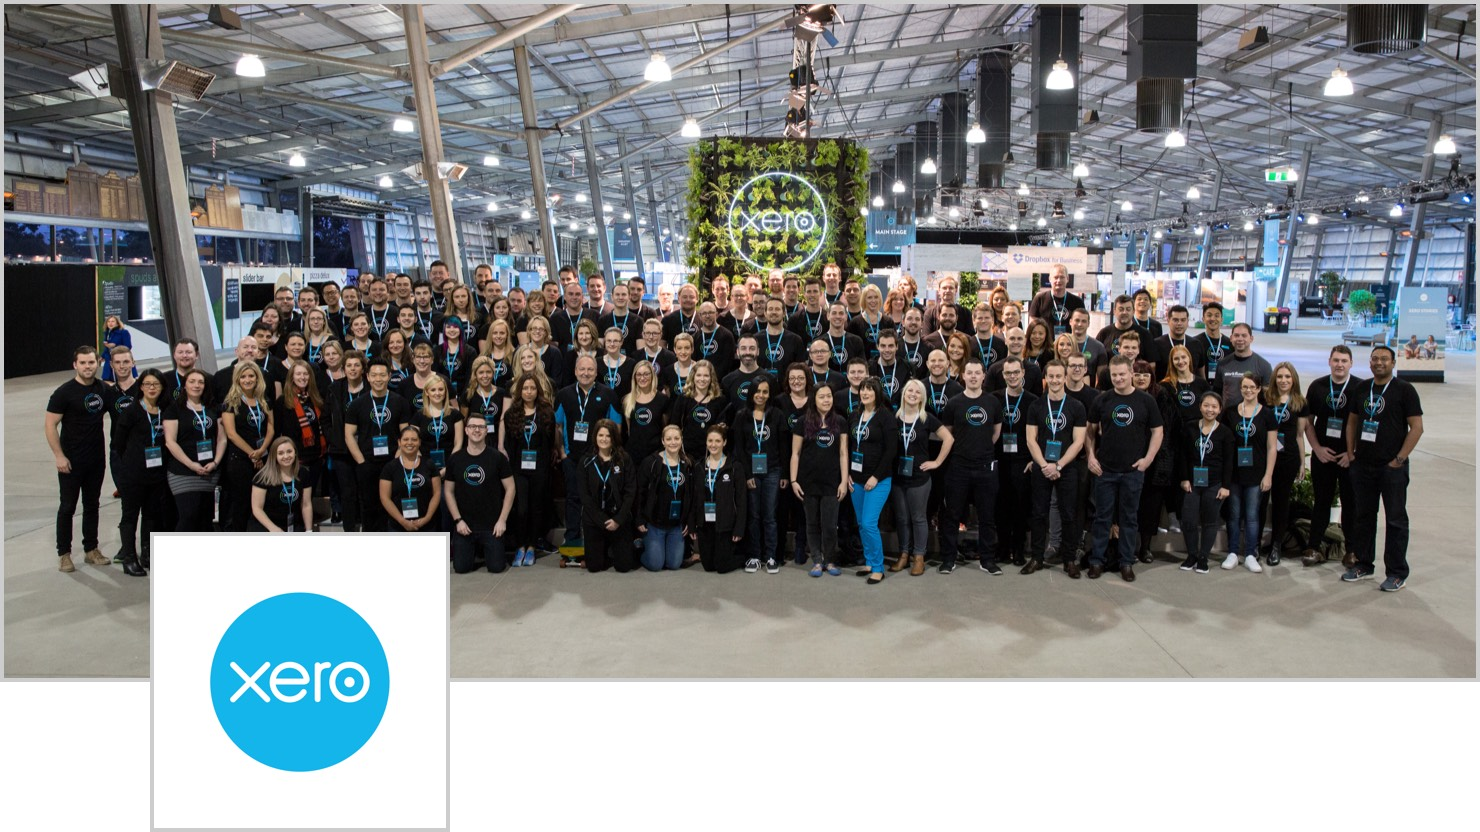 Xero chooses Jostle to connect a global team